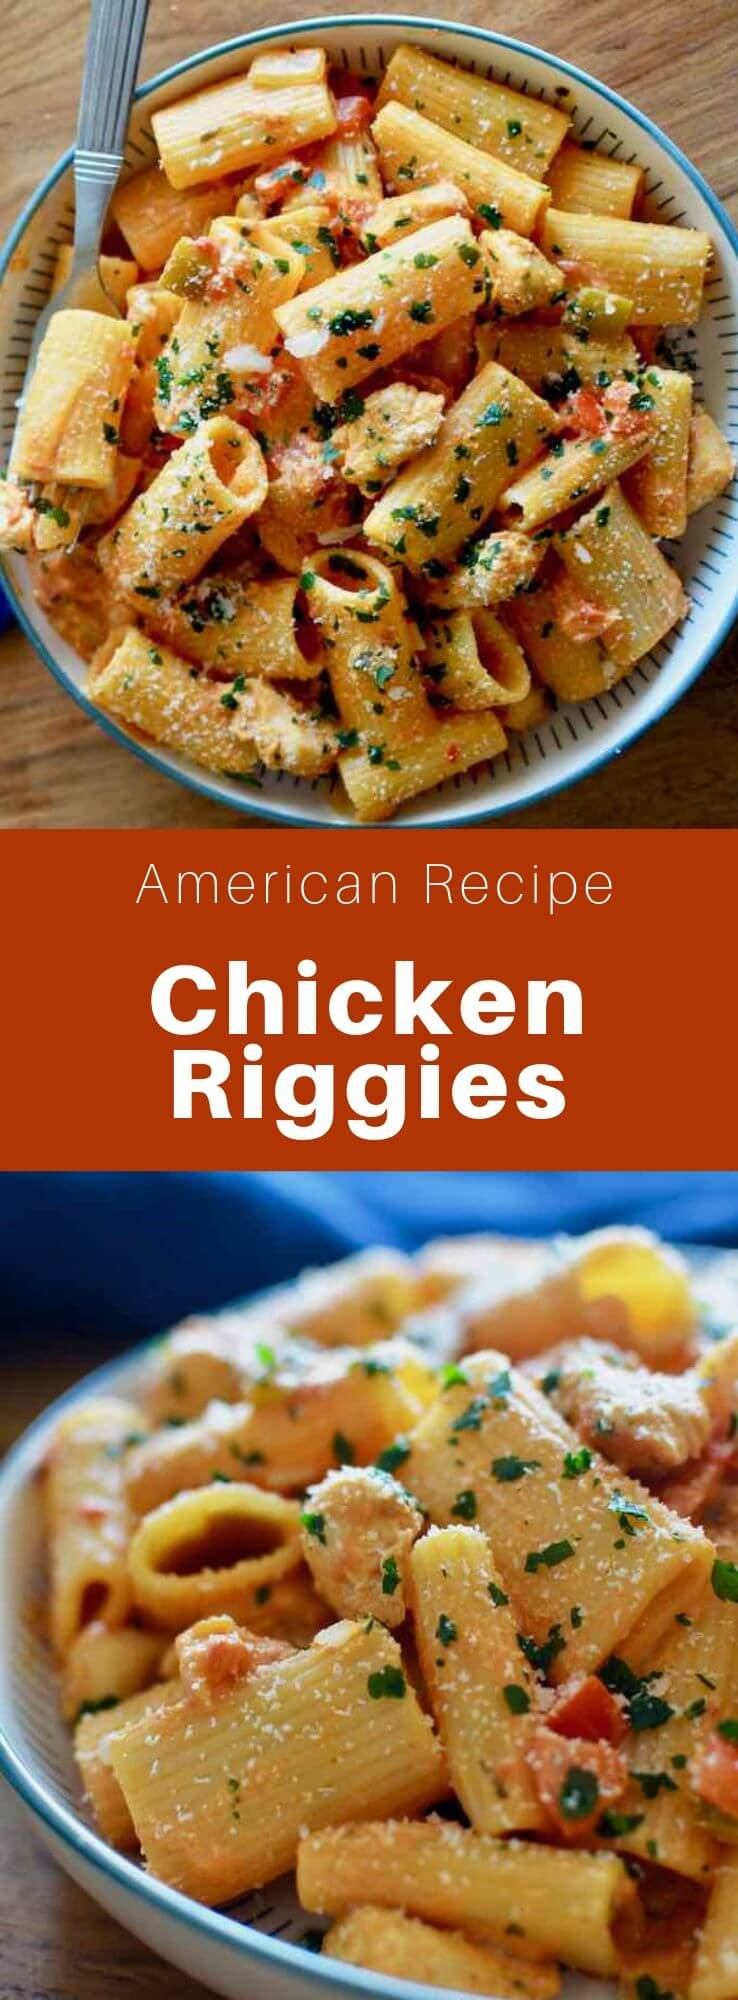 Chicken riggies (or Utica riggies) is a spicy Italian-American chicken rigatoni dish with a creamy tomato sauce, that is very popular in the state of New York. #AmericanRecipe #AmericanFood #AmericanCuisine #WorldCuisine #196flavors